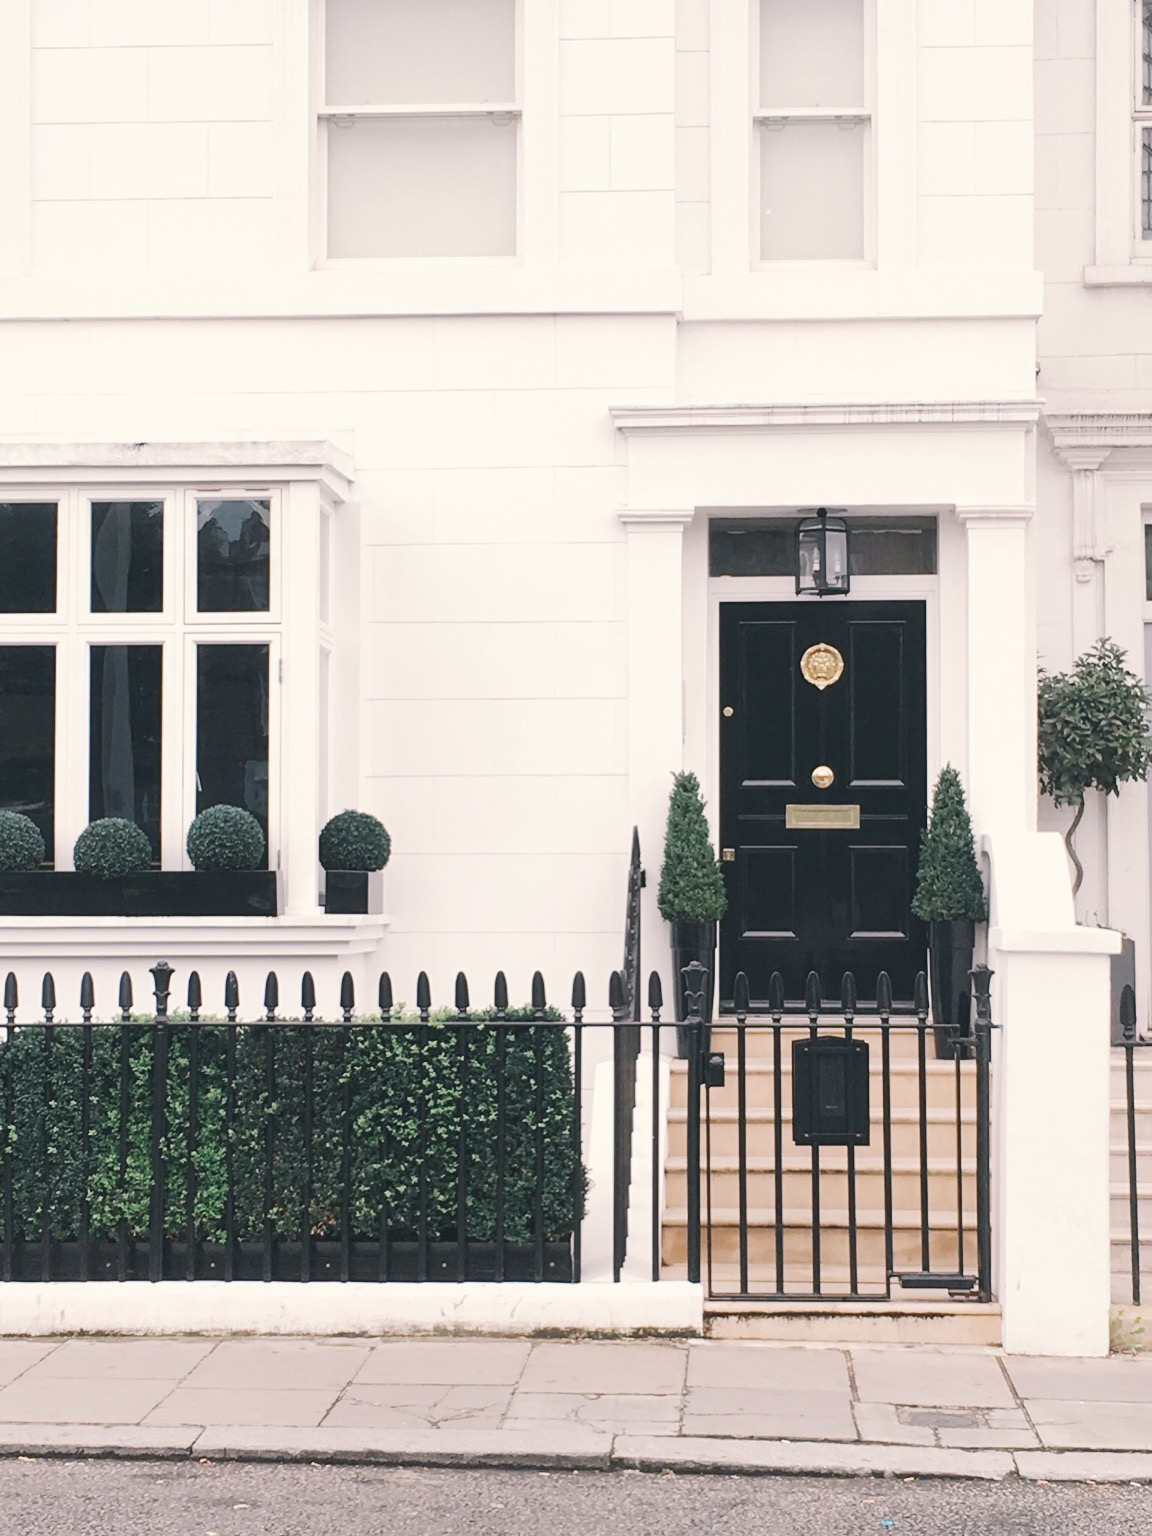 White exterior with black fence and door in London